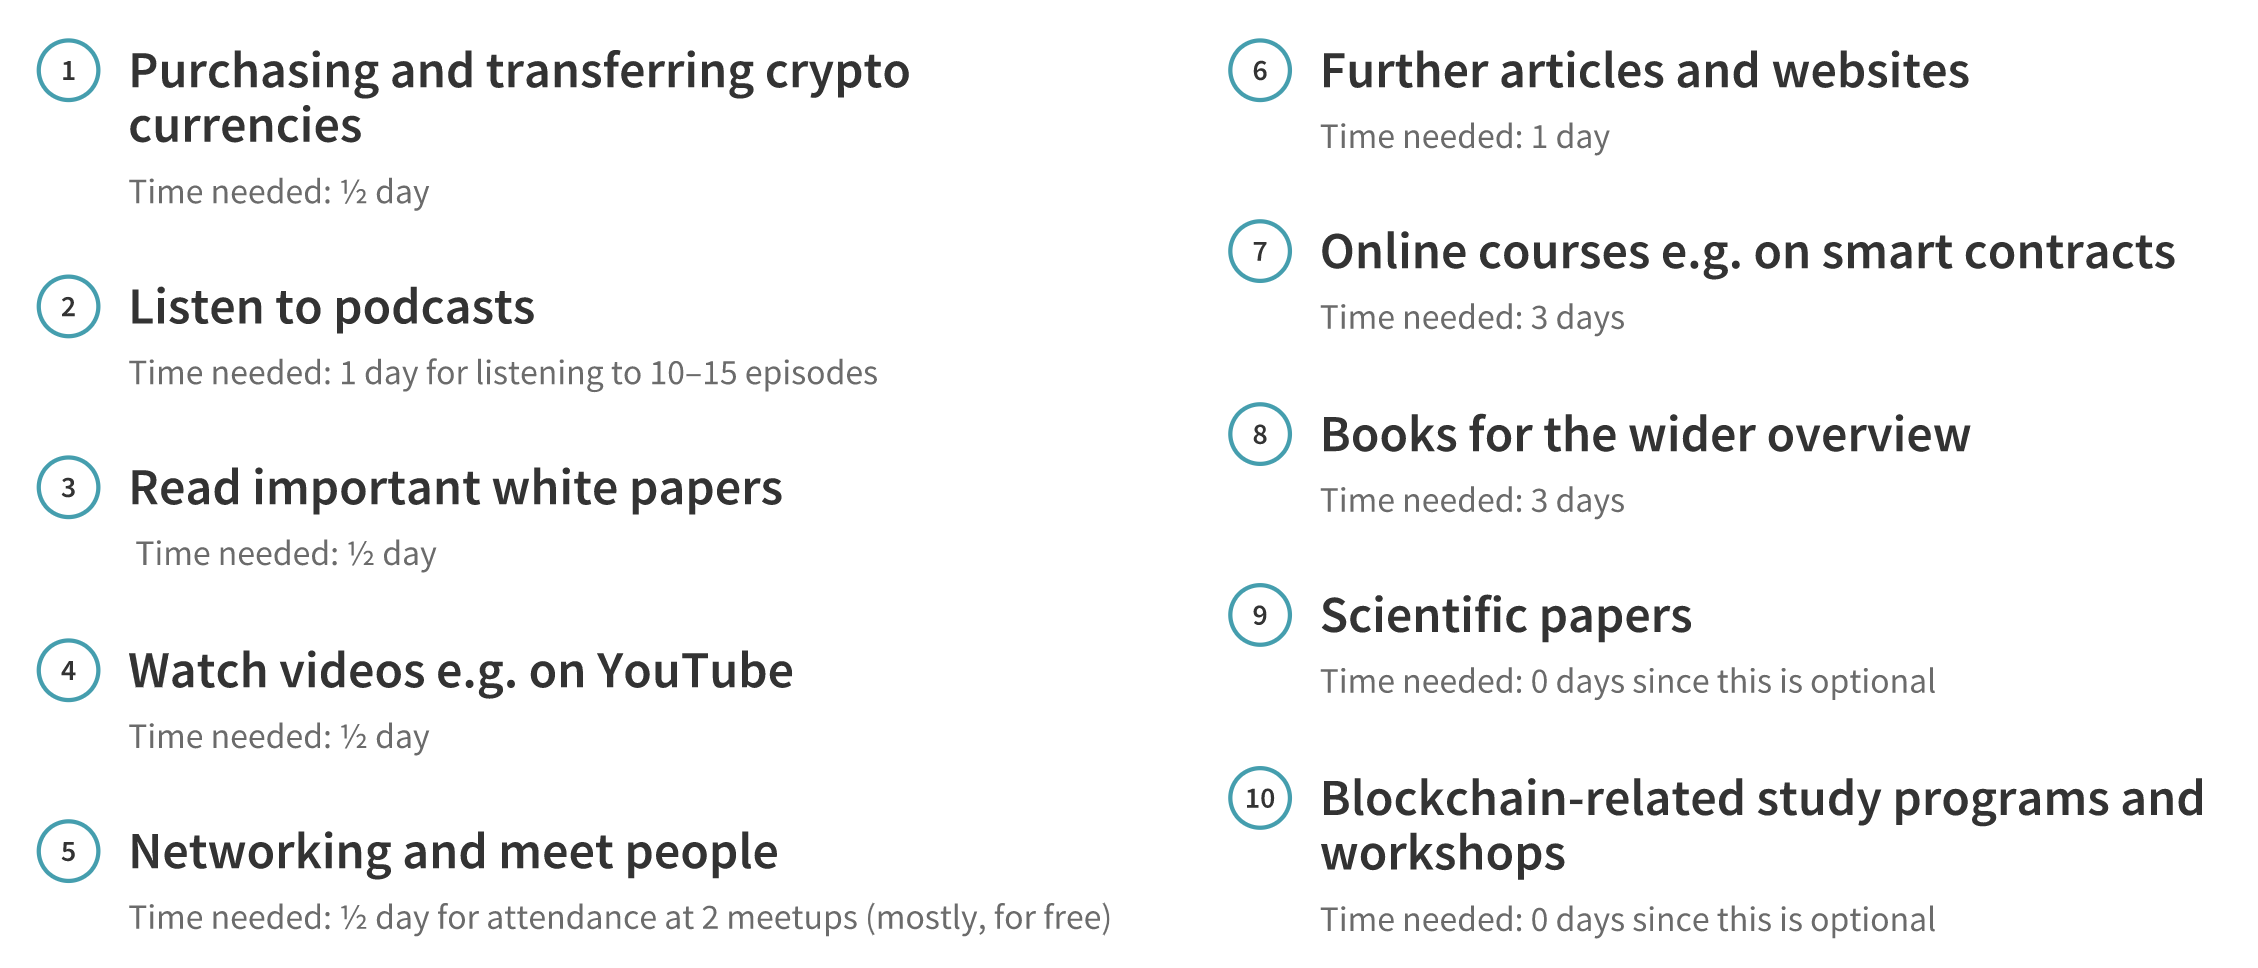 Education In Blockchain And DLT: How To Acquire The Necessary Knowledge With A Workload Of 10 Working Days